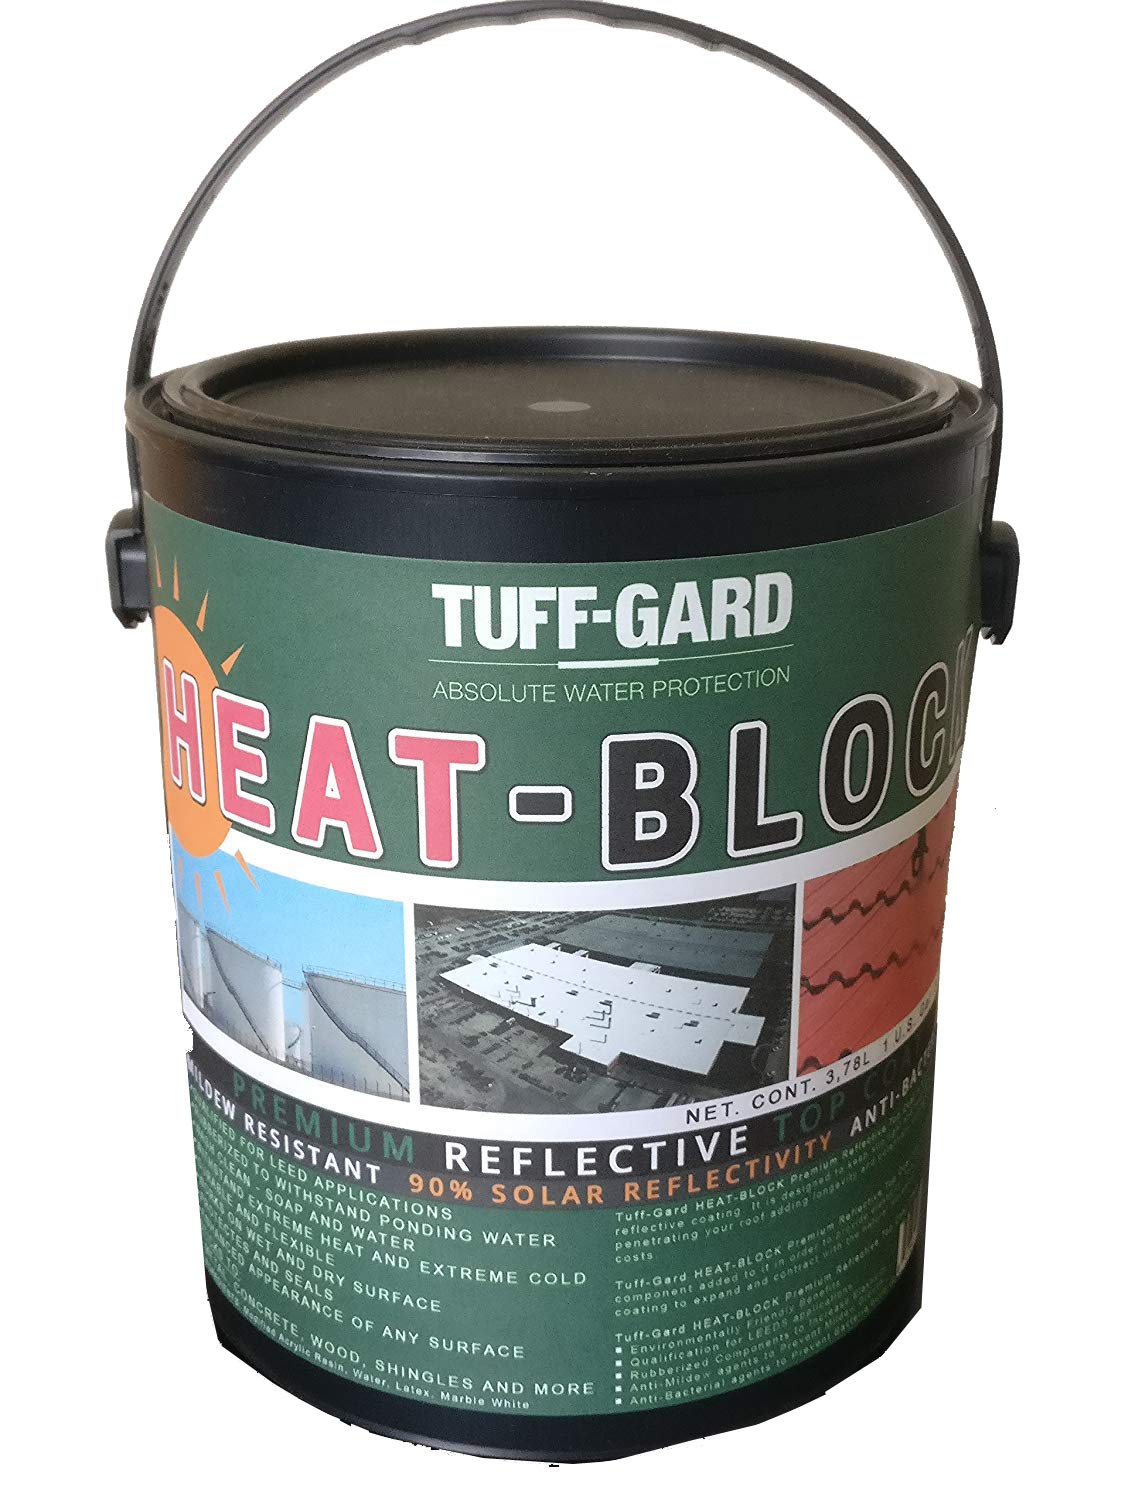 HEAT-BLOCK - 1 Gallon - White Highly Reflective Cool Roof Paint - Solar Reflective - Cool Roof - Waterproof - Environmentally Friendly - No Solvents or VOC's - Easy to Apply - No Mixing